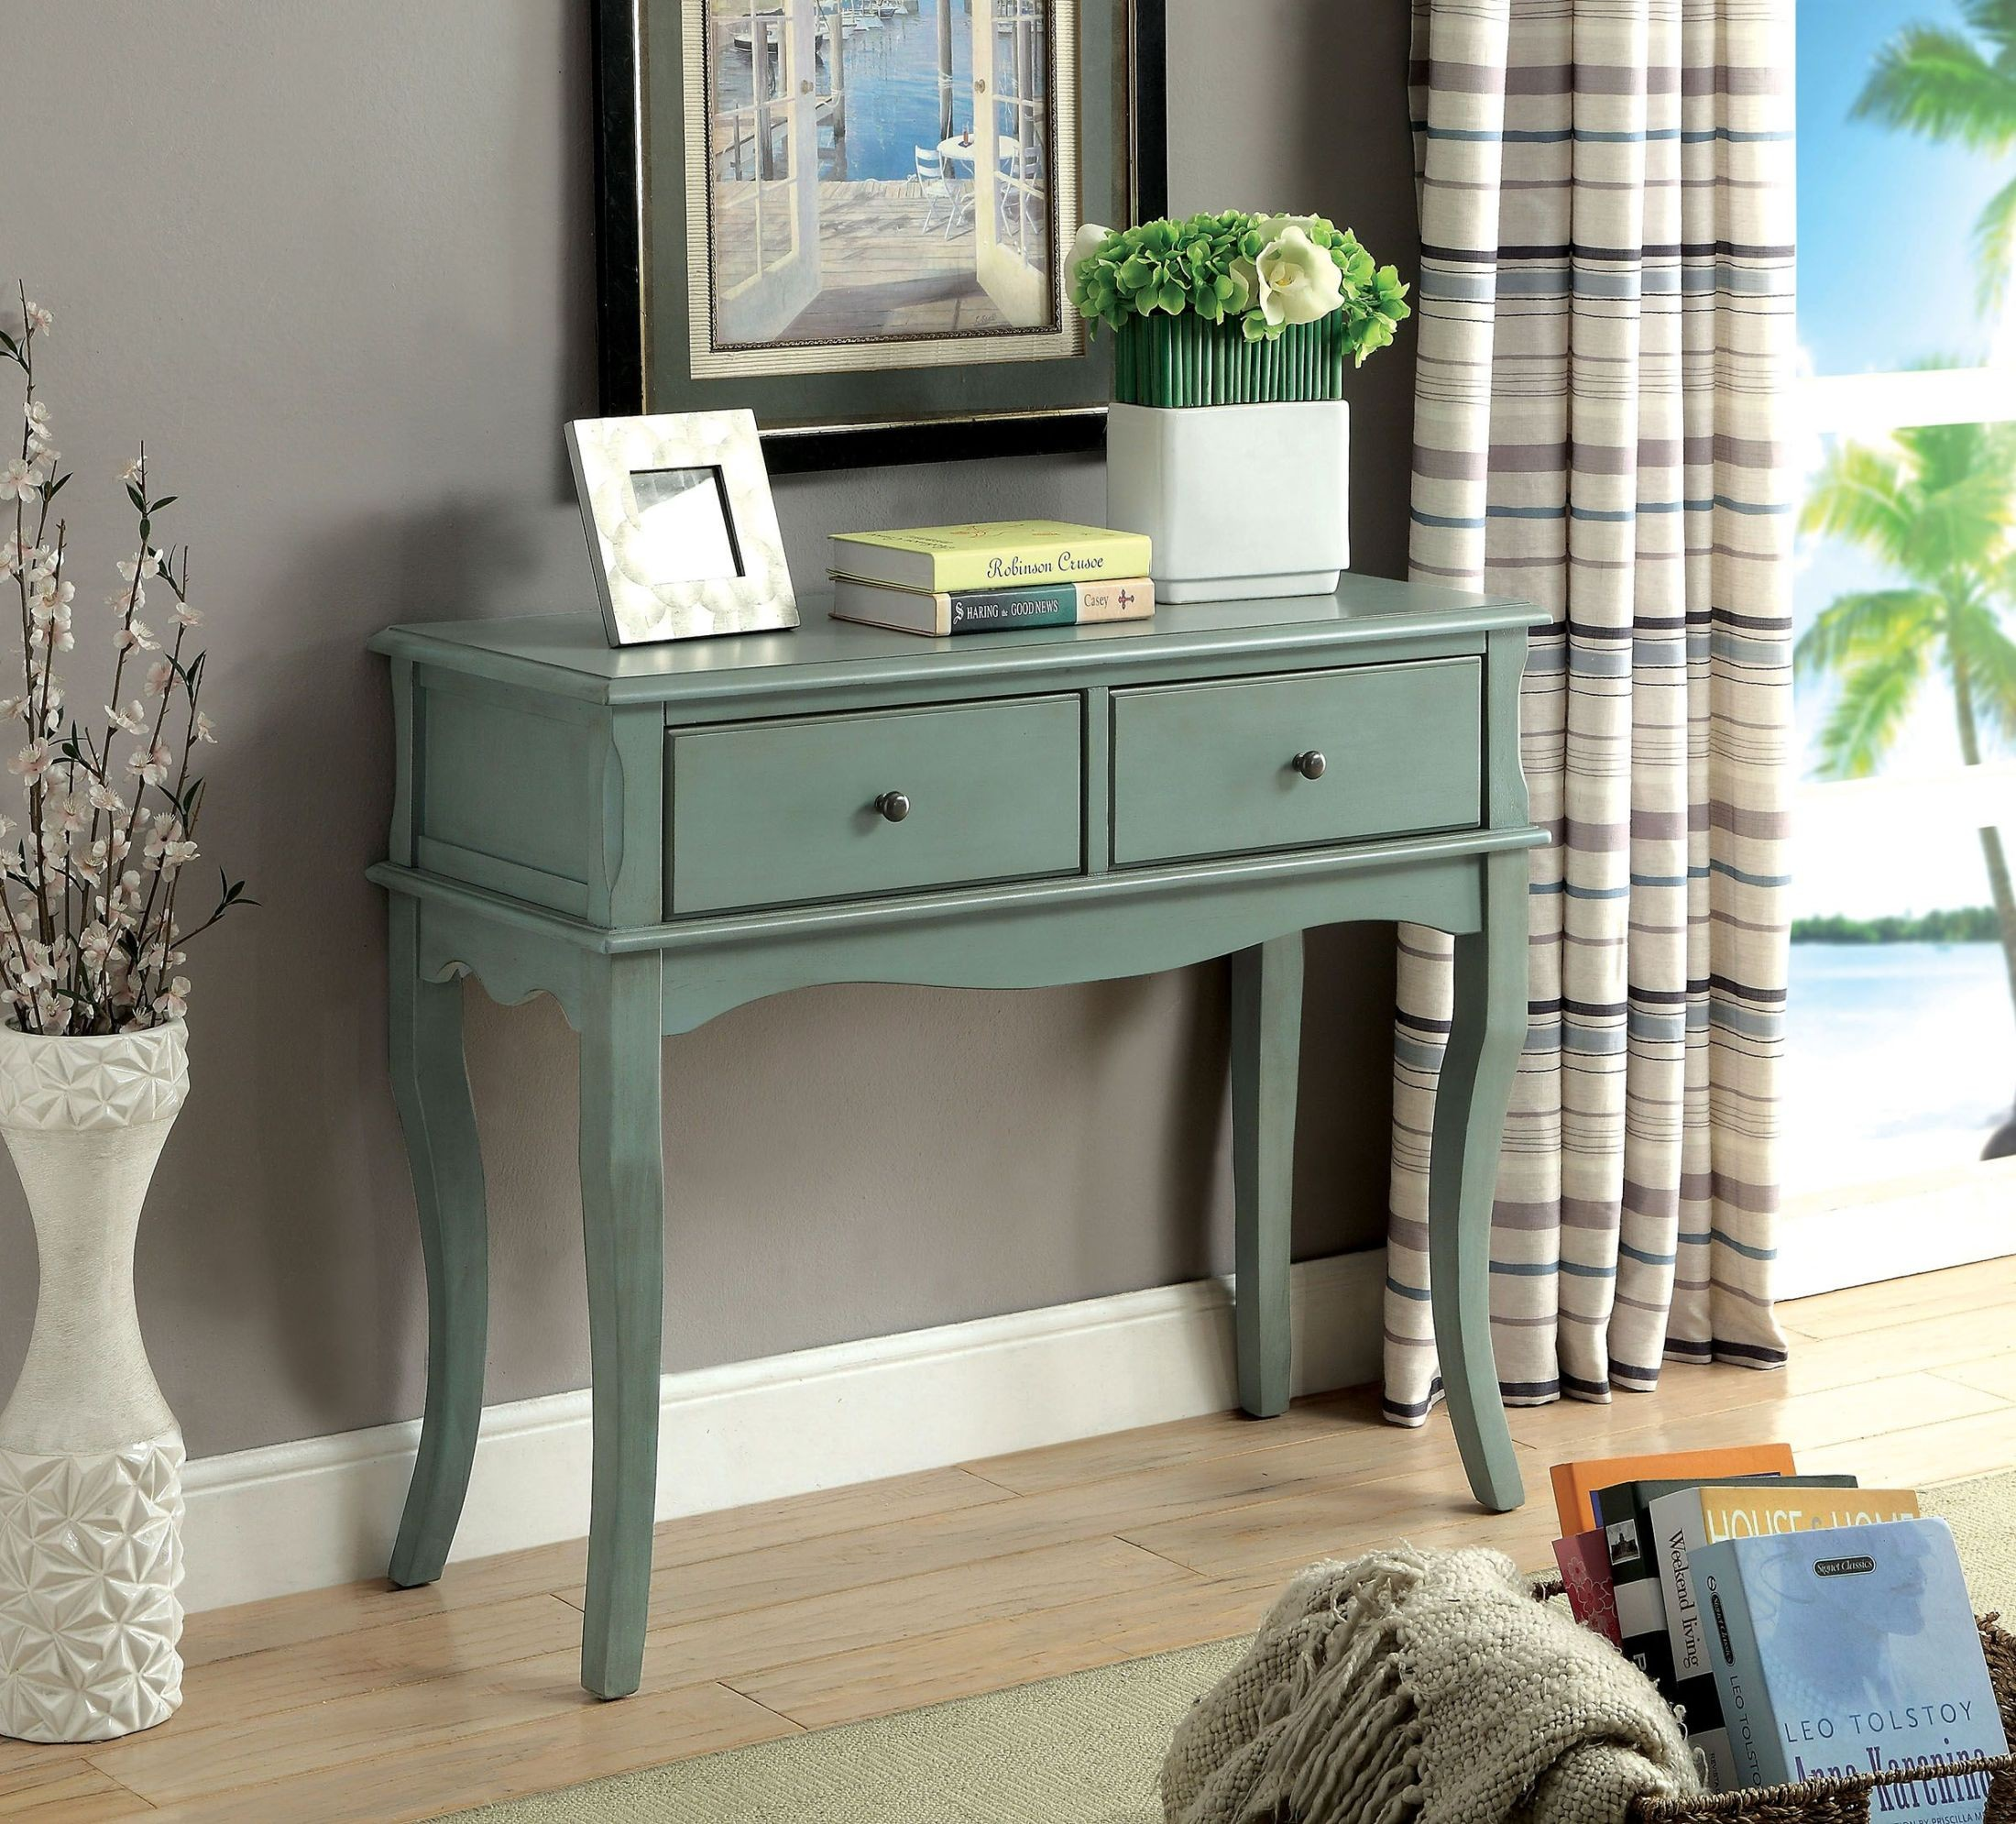 outstanding hallway cabinets furniture | Toni Antique Teal Hallway Cabinet from Furniture of ...